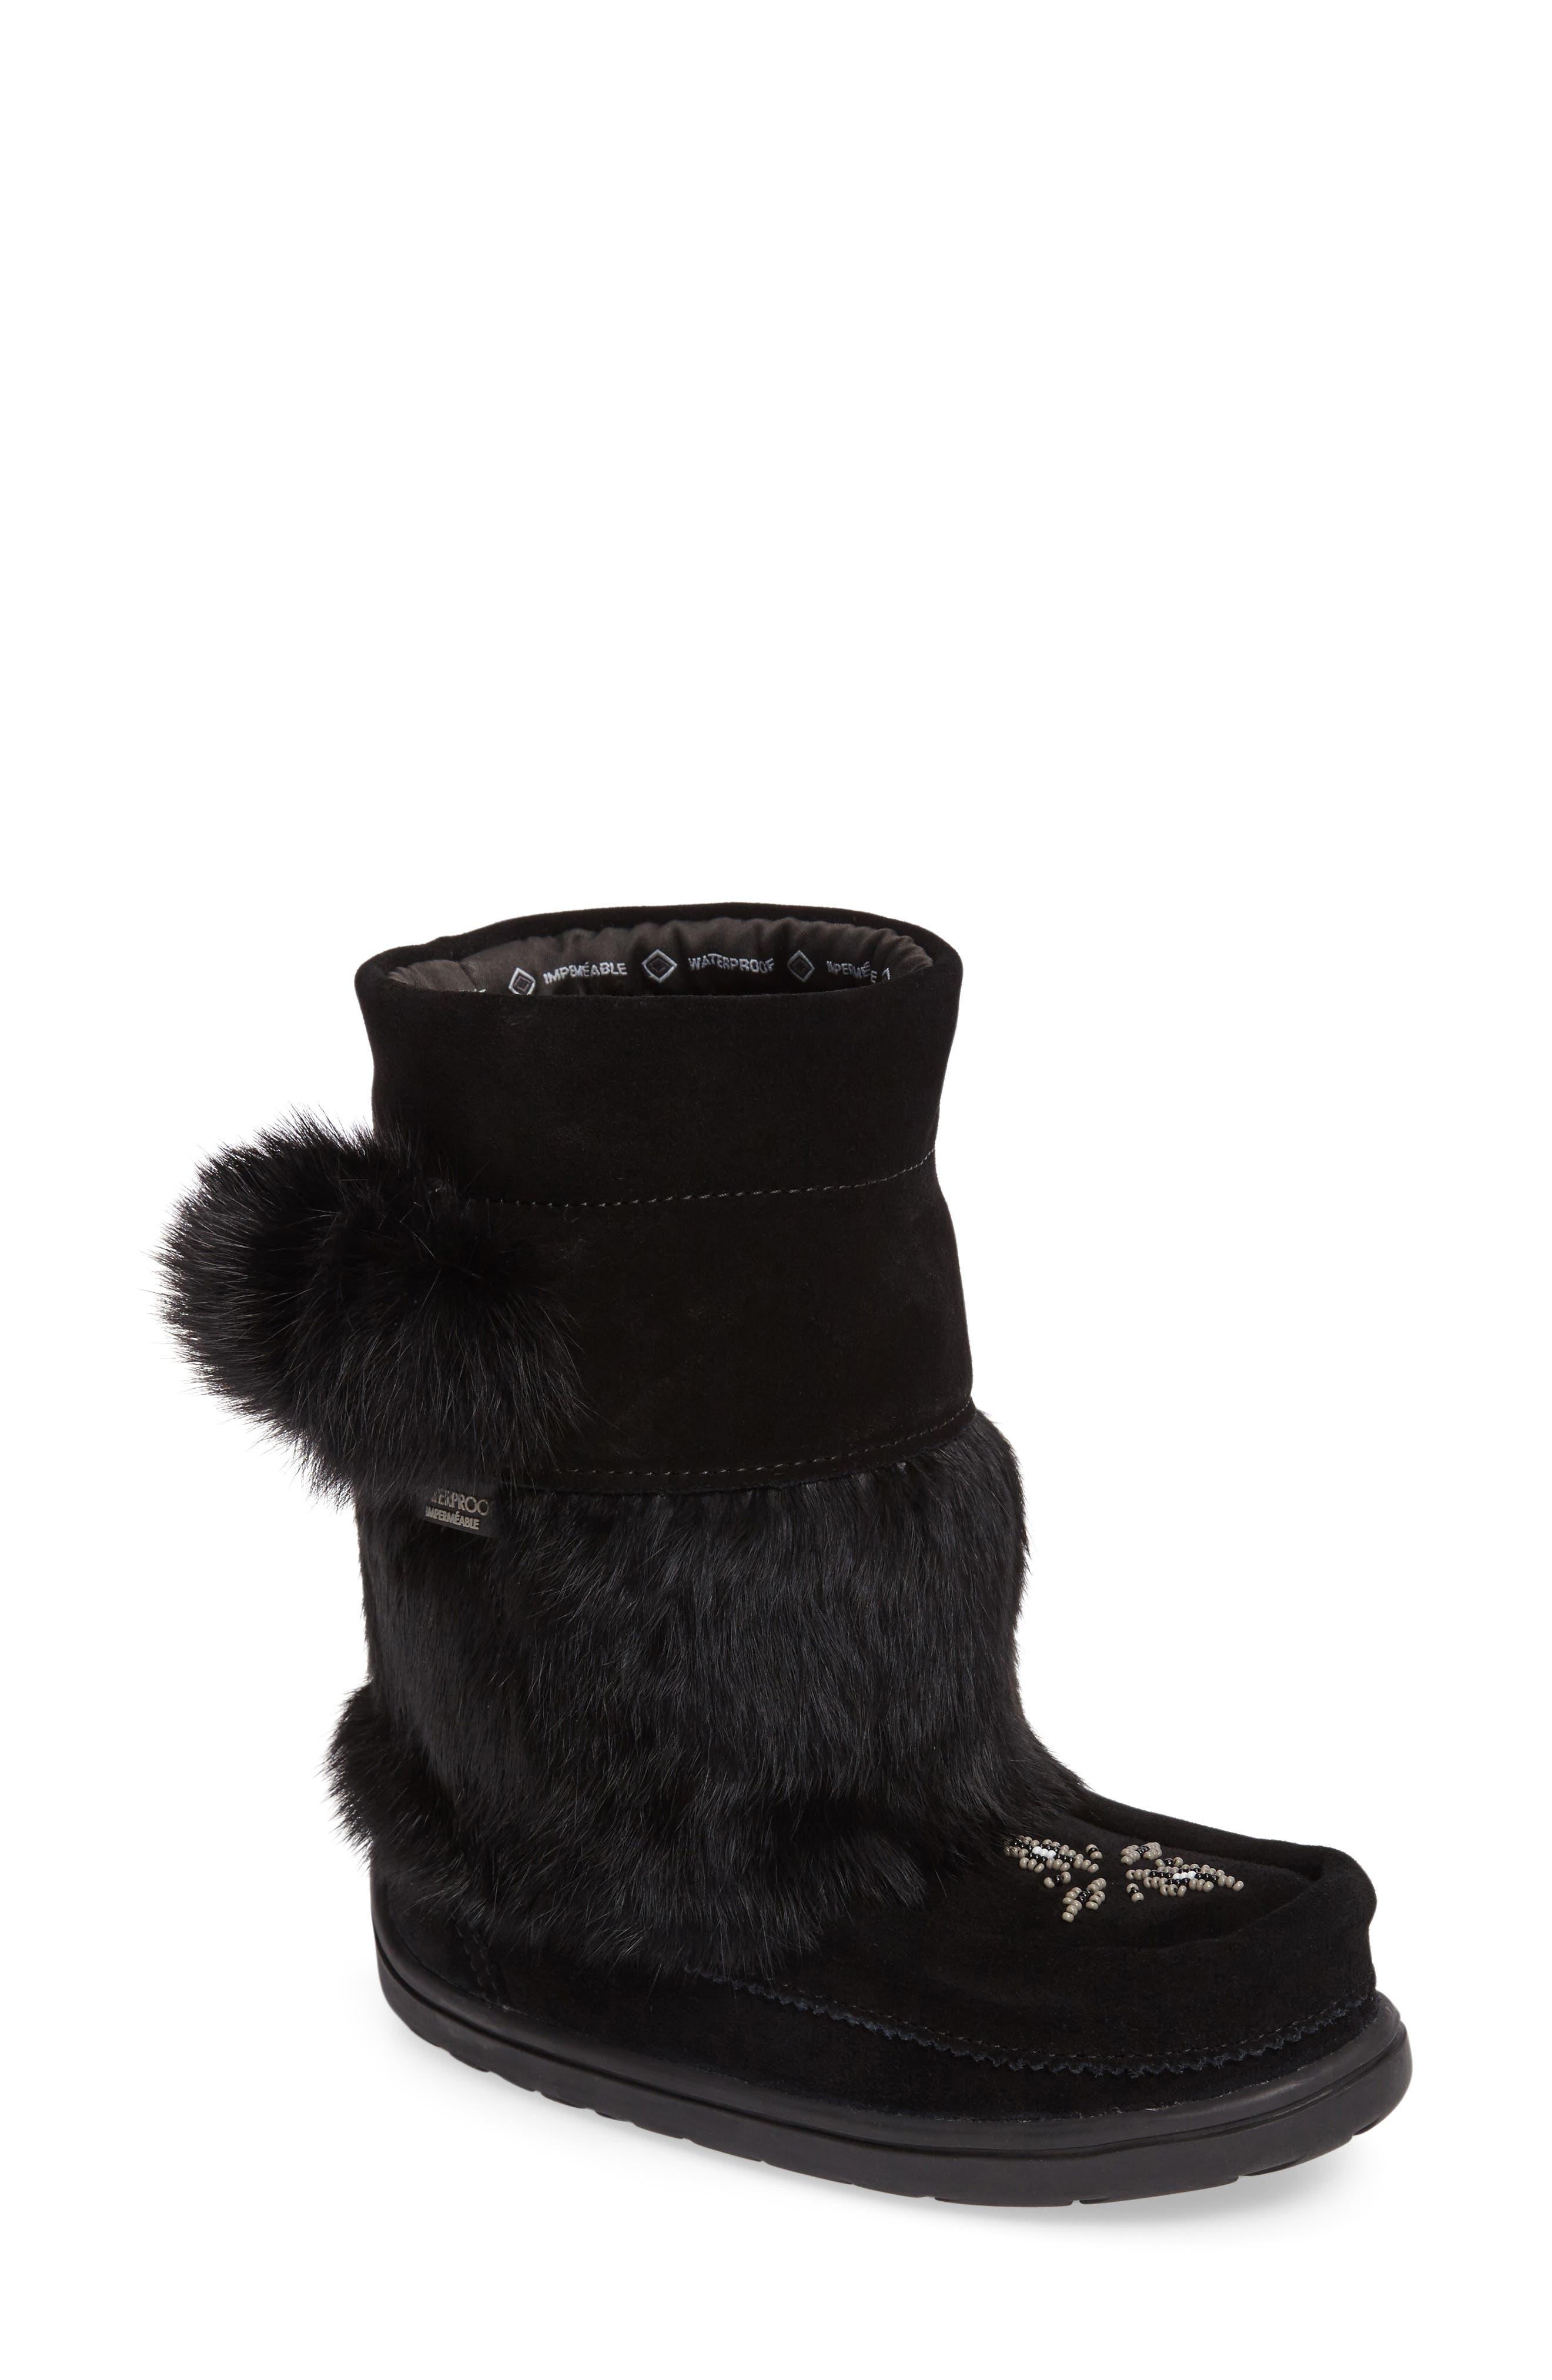 Main Image - Manitobah Mukluks Snowy Owlet Genuine Fur Waterproof Boot (Walker, Toddler & Little Kid)